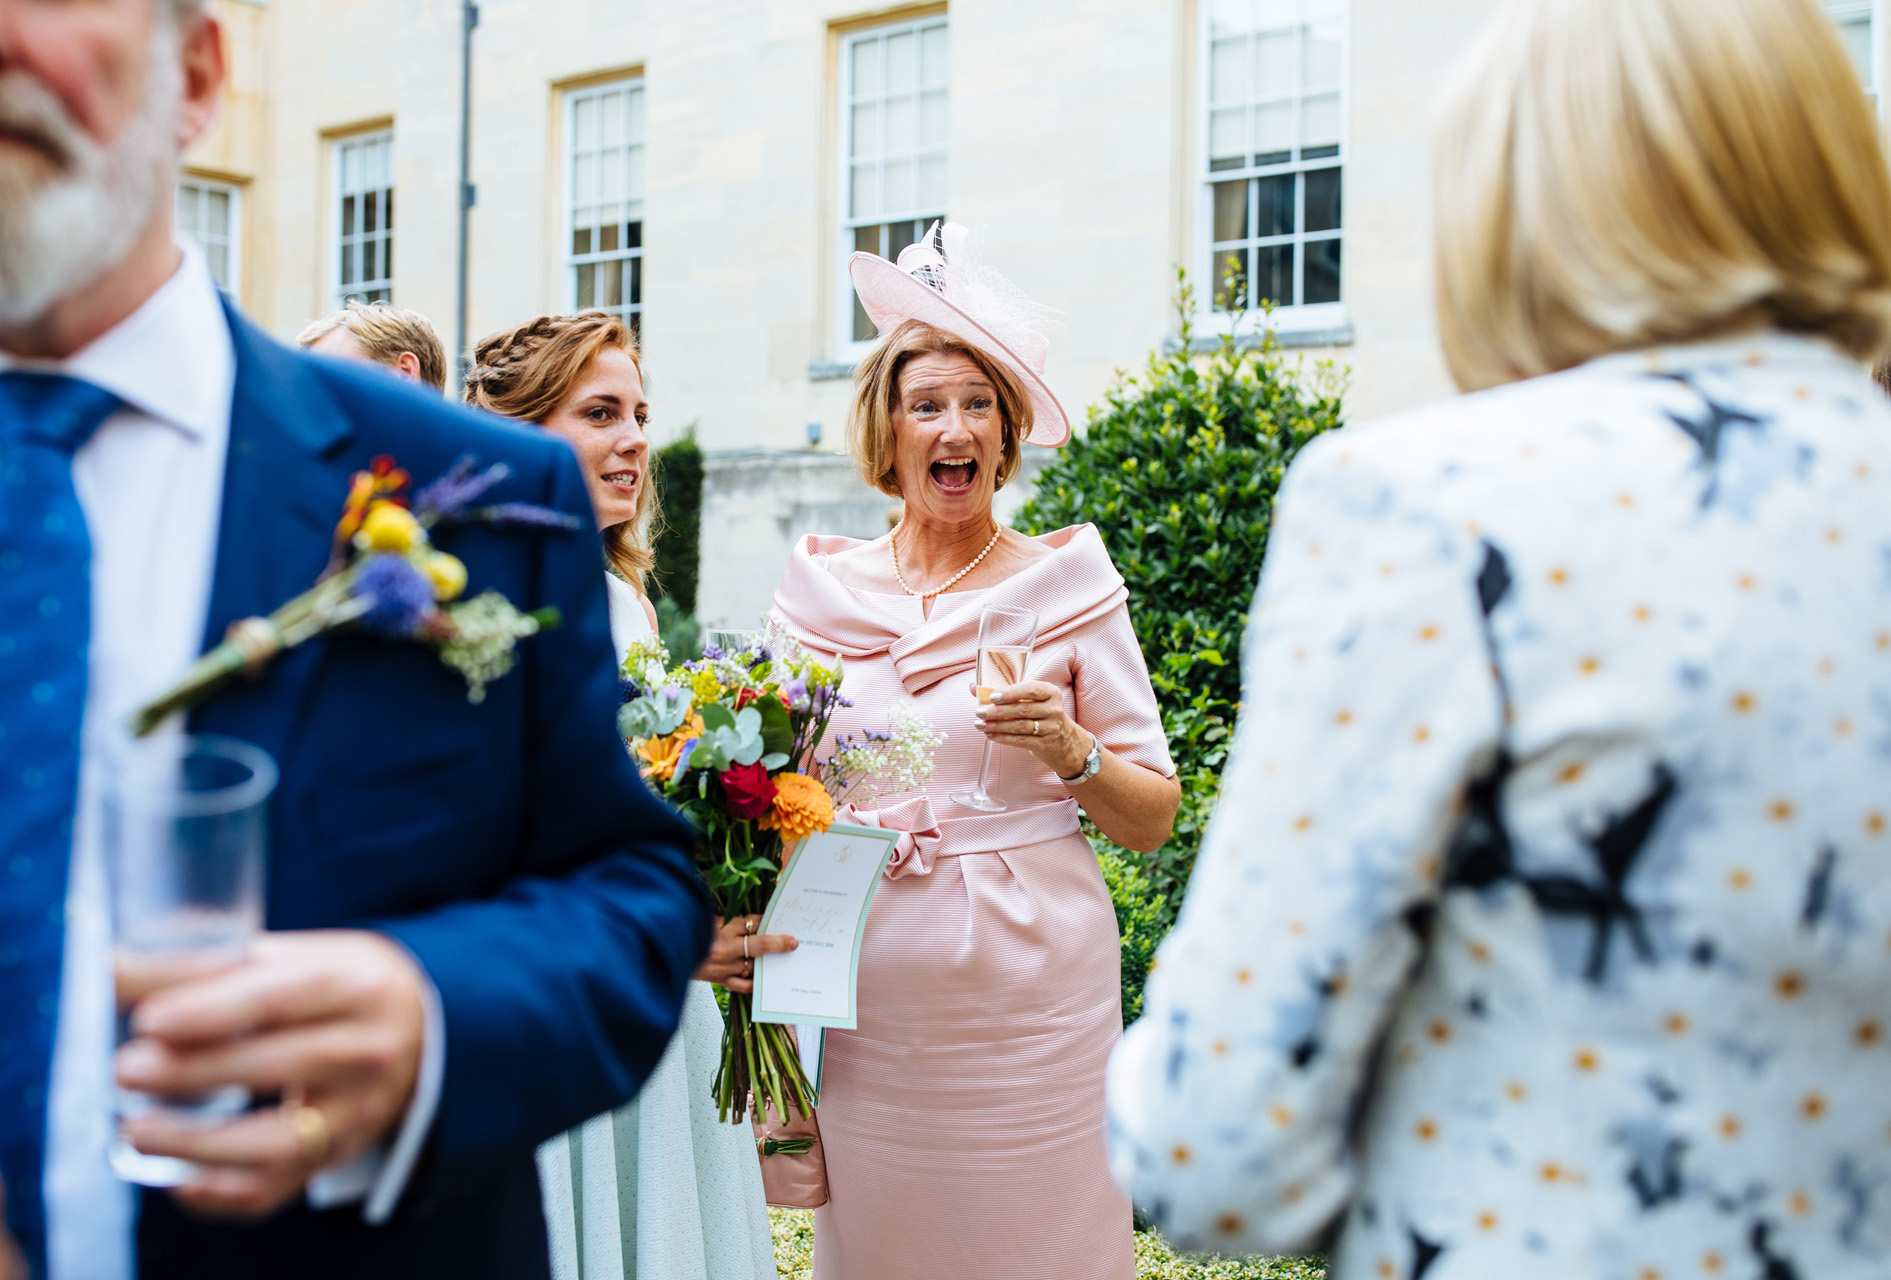 mother of the bride surprised and happy bride and groom saying vows in wedding ceremony in the great hall at syon park